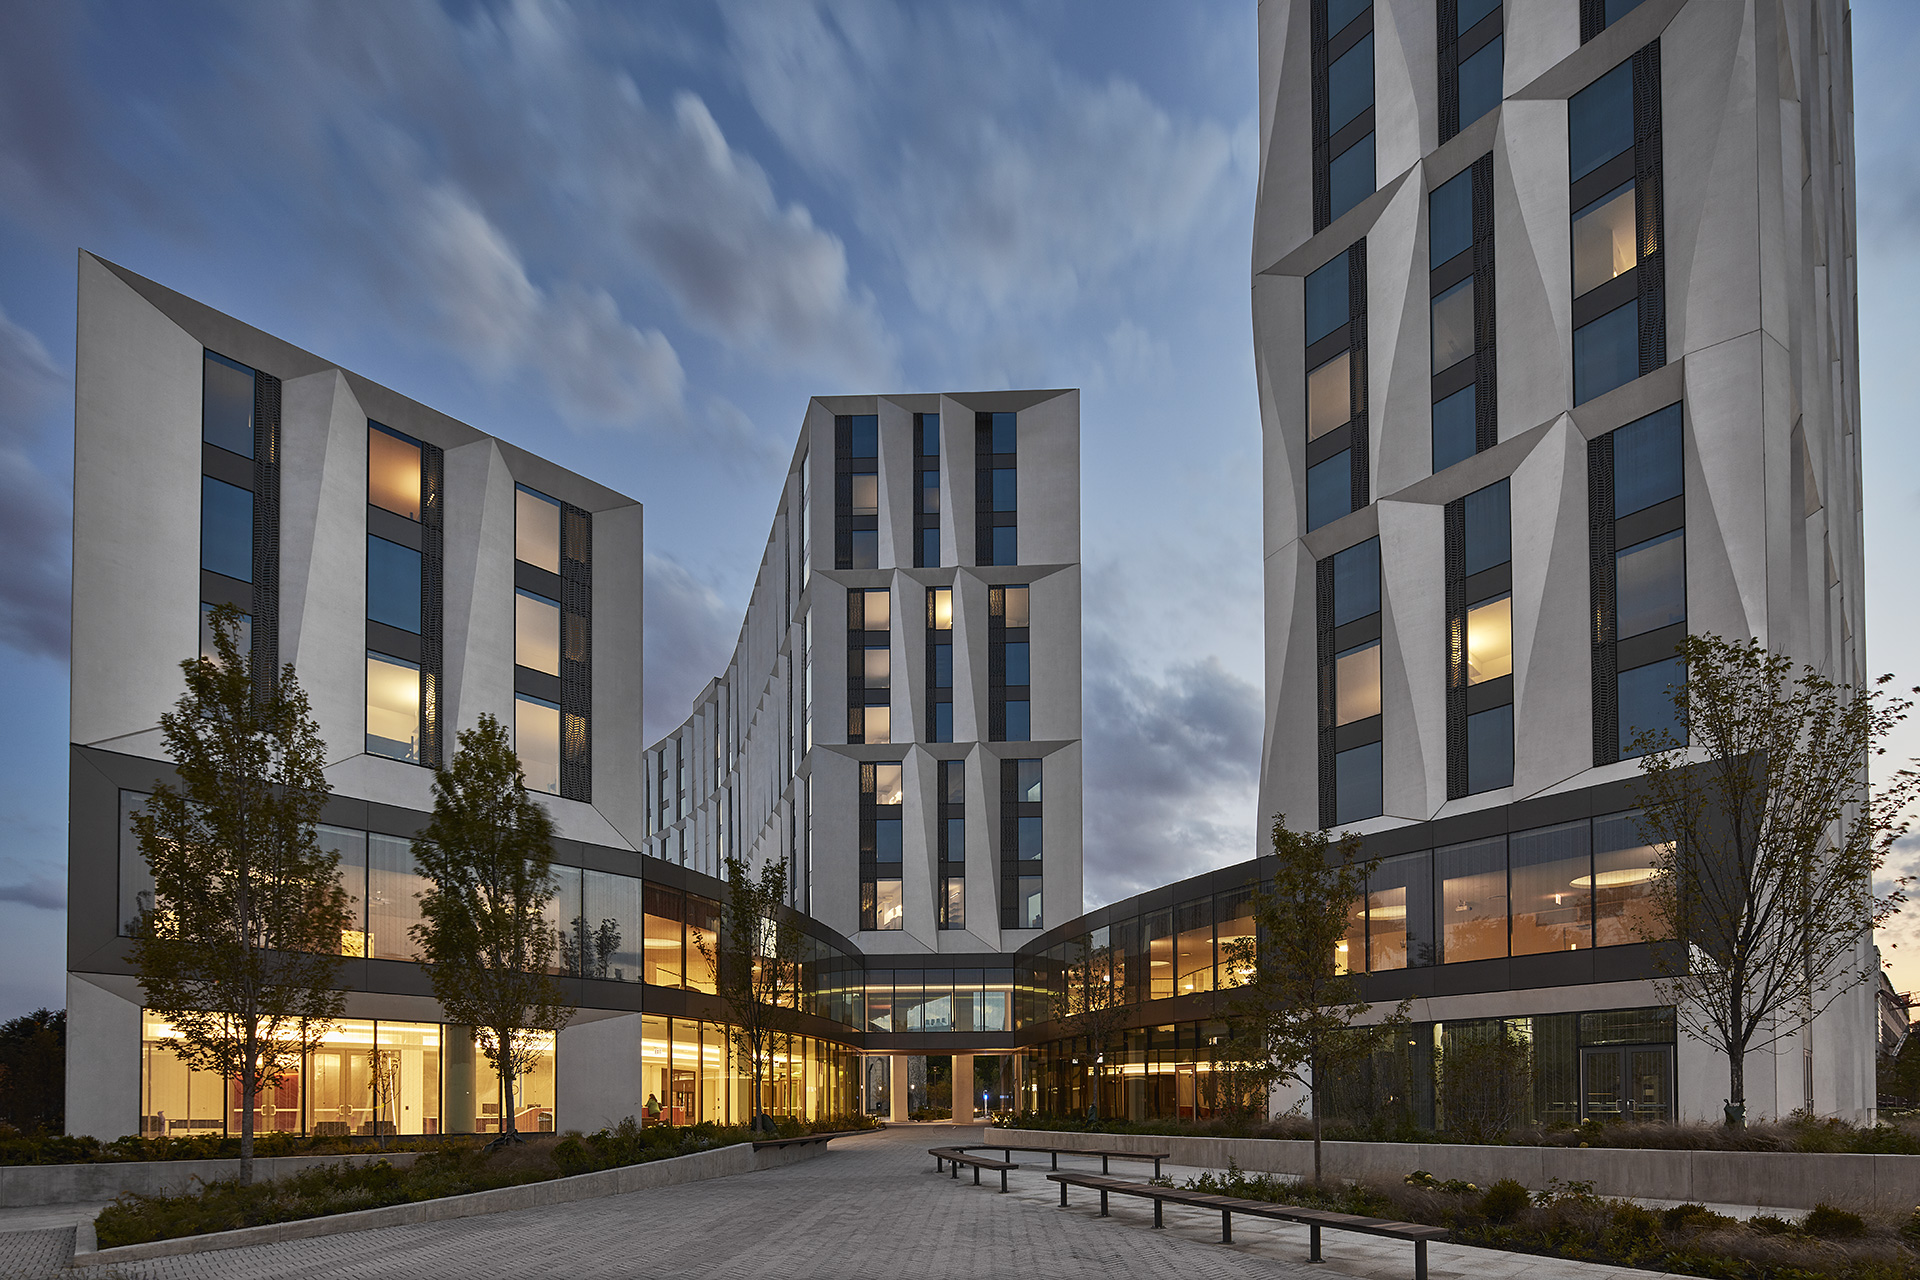 University of Chicago Campus North Residential Commons © Tom Harris, Courtesy Studio Gang